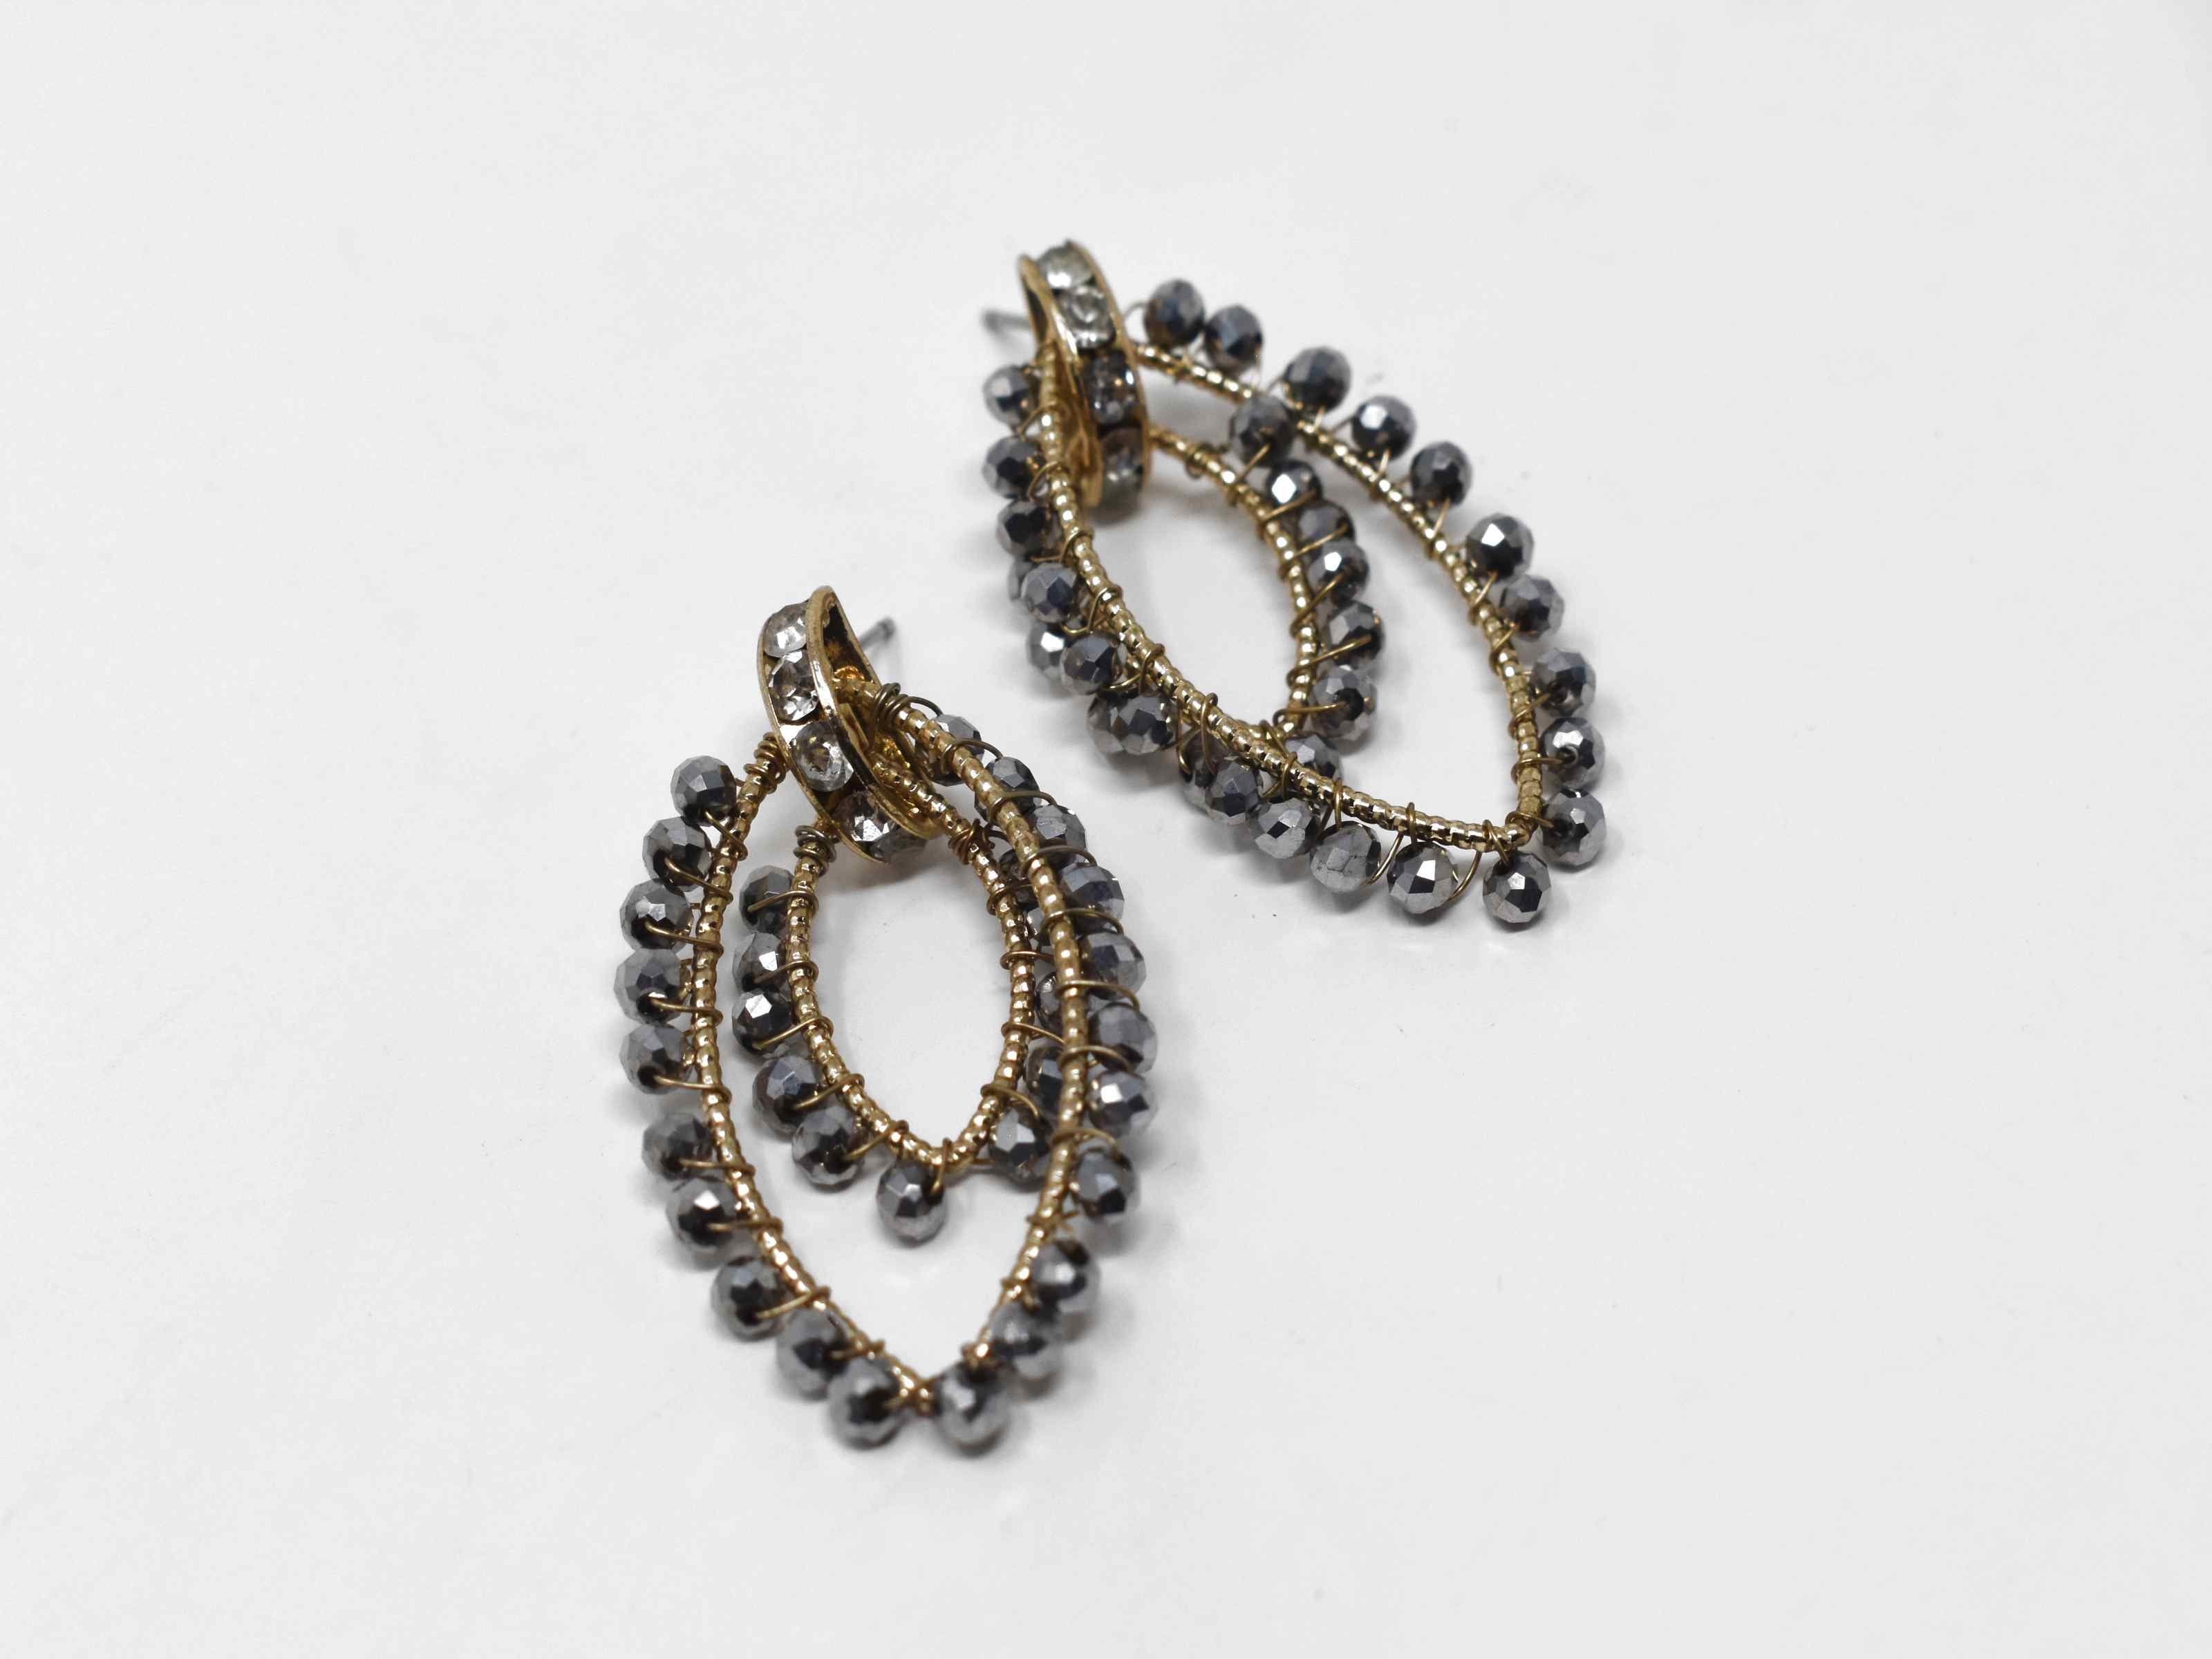 Do you want to see a new modern style with a classic twist. Come on over and take a look at our foxglove drop dangle earrings. These earrings have a gold and pewter design with a string of set clear stones. They are 1 1/2 in length with a pushback clasp.